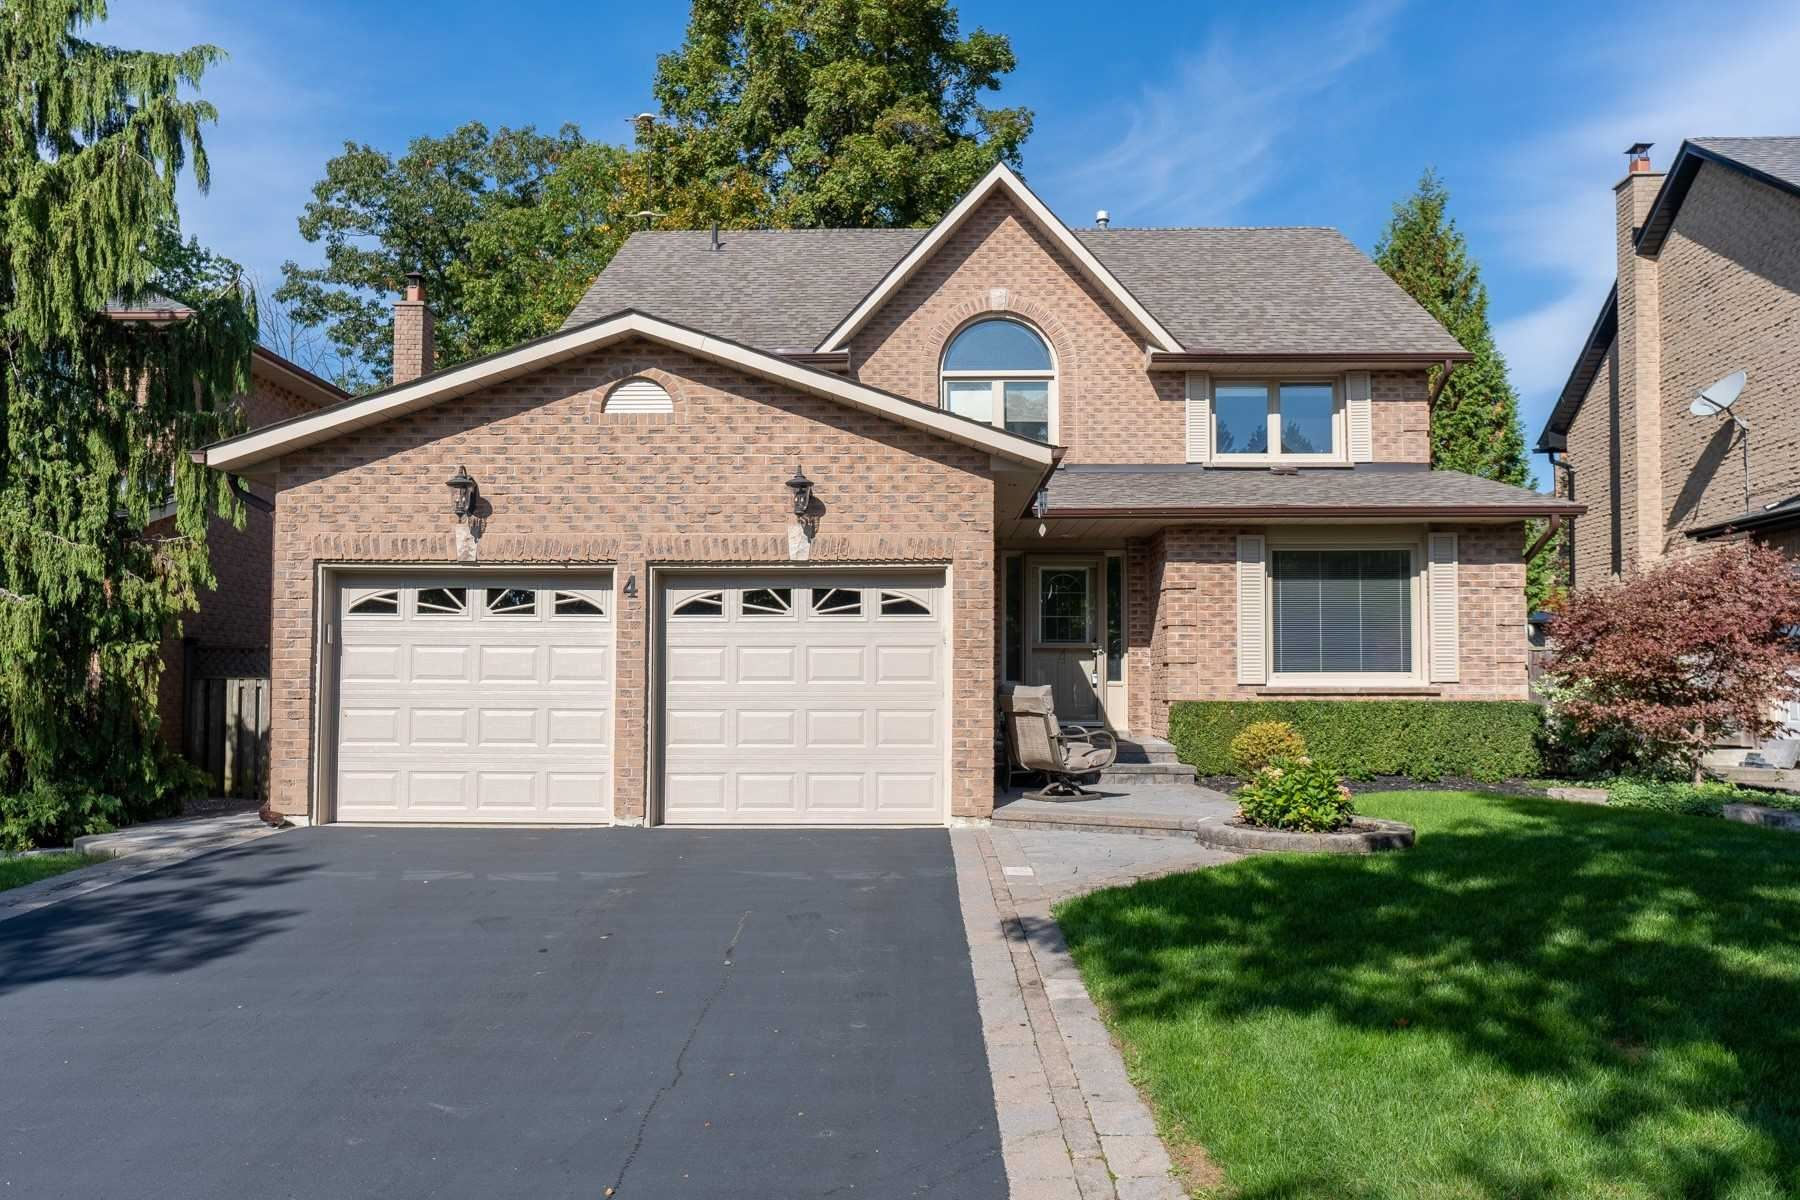 4 Vale Cres, Ajax, ON L1S5A4 - MLS#: E5406367